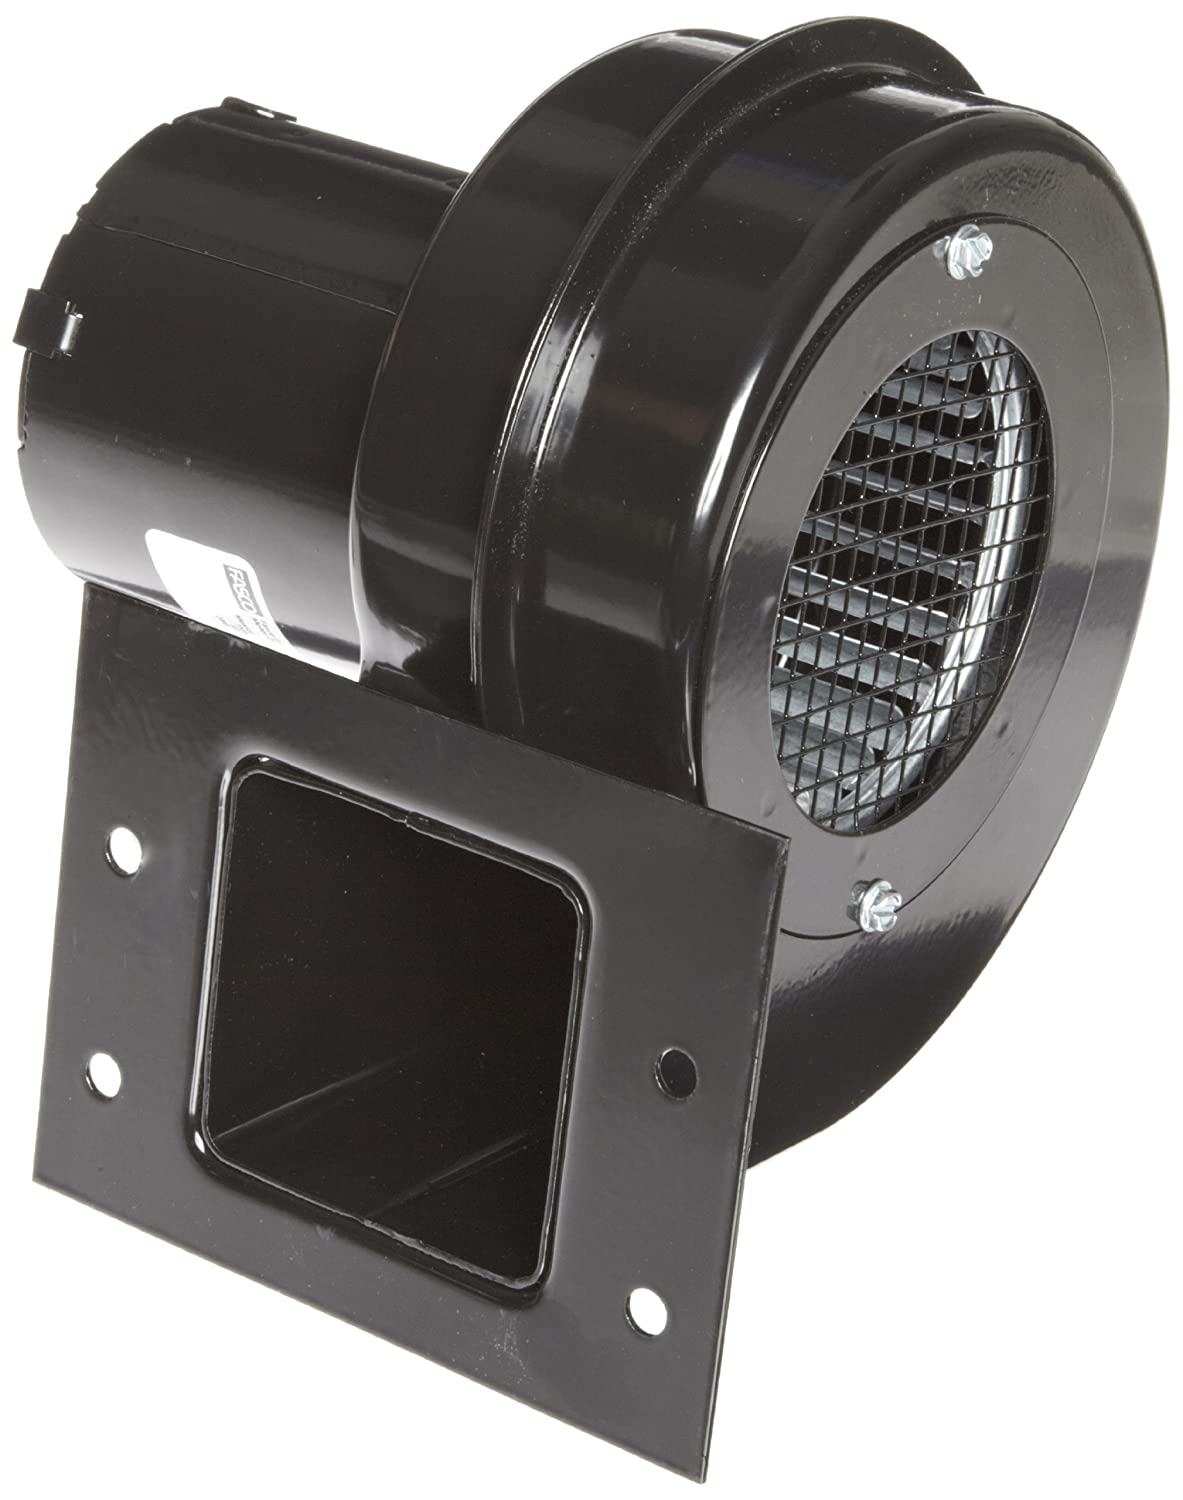 Fasco 50752-D500 Centrifugal Blower with Sleeve Bearing, 3,100 rpm, 115V, 60Hz, 1.1 amps